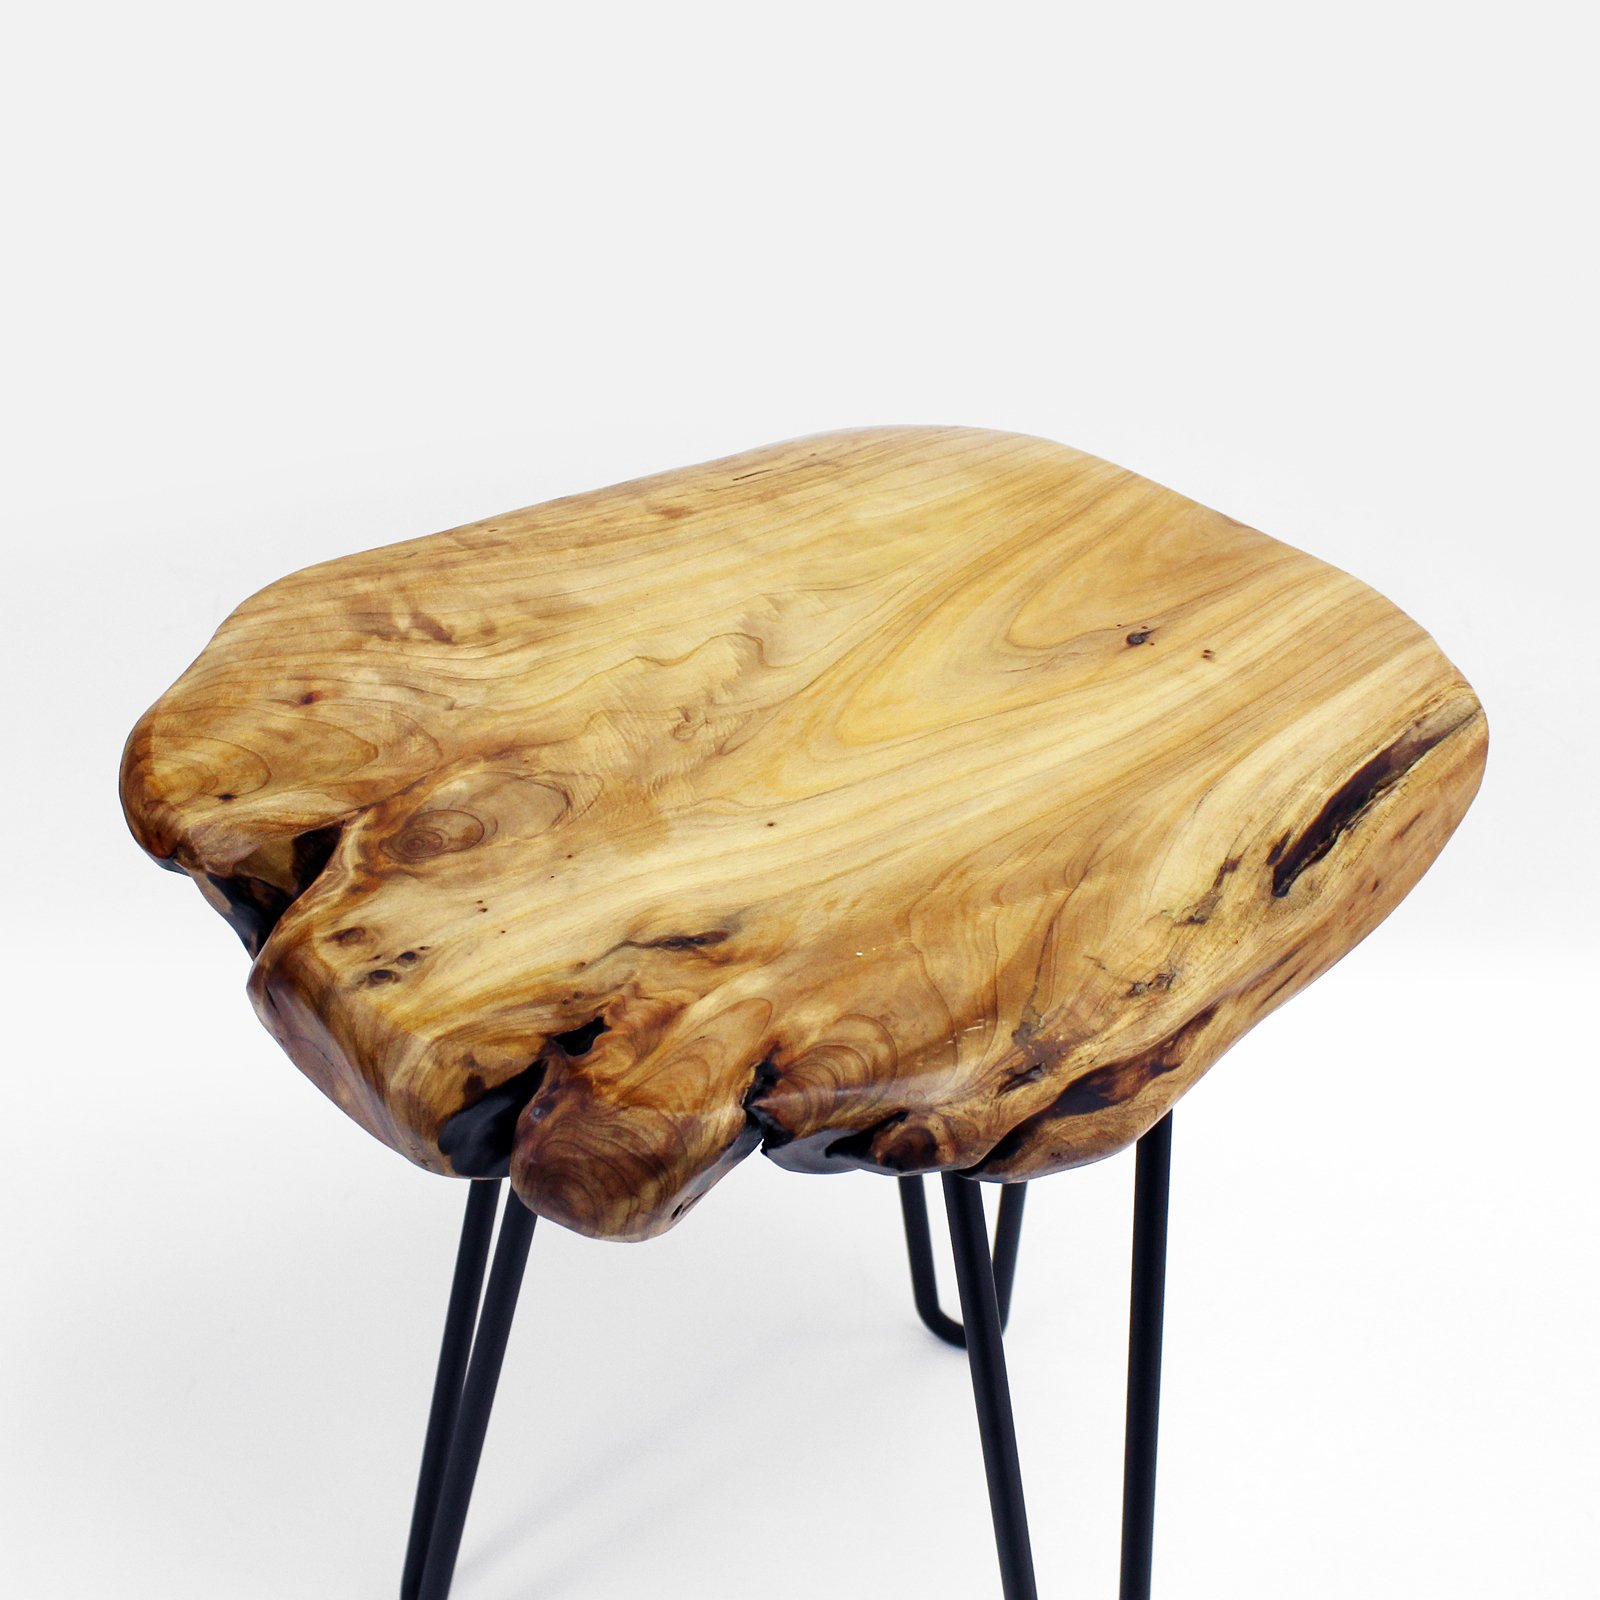 WELLAND Live Edge Side Table with Hairpin Legs, Natural Edge Side Table, Small Nightstand Wood, 15.5'' Tall by WELLAND (Image #4)